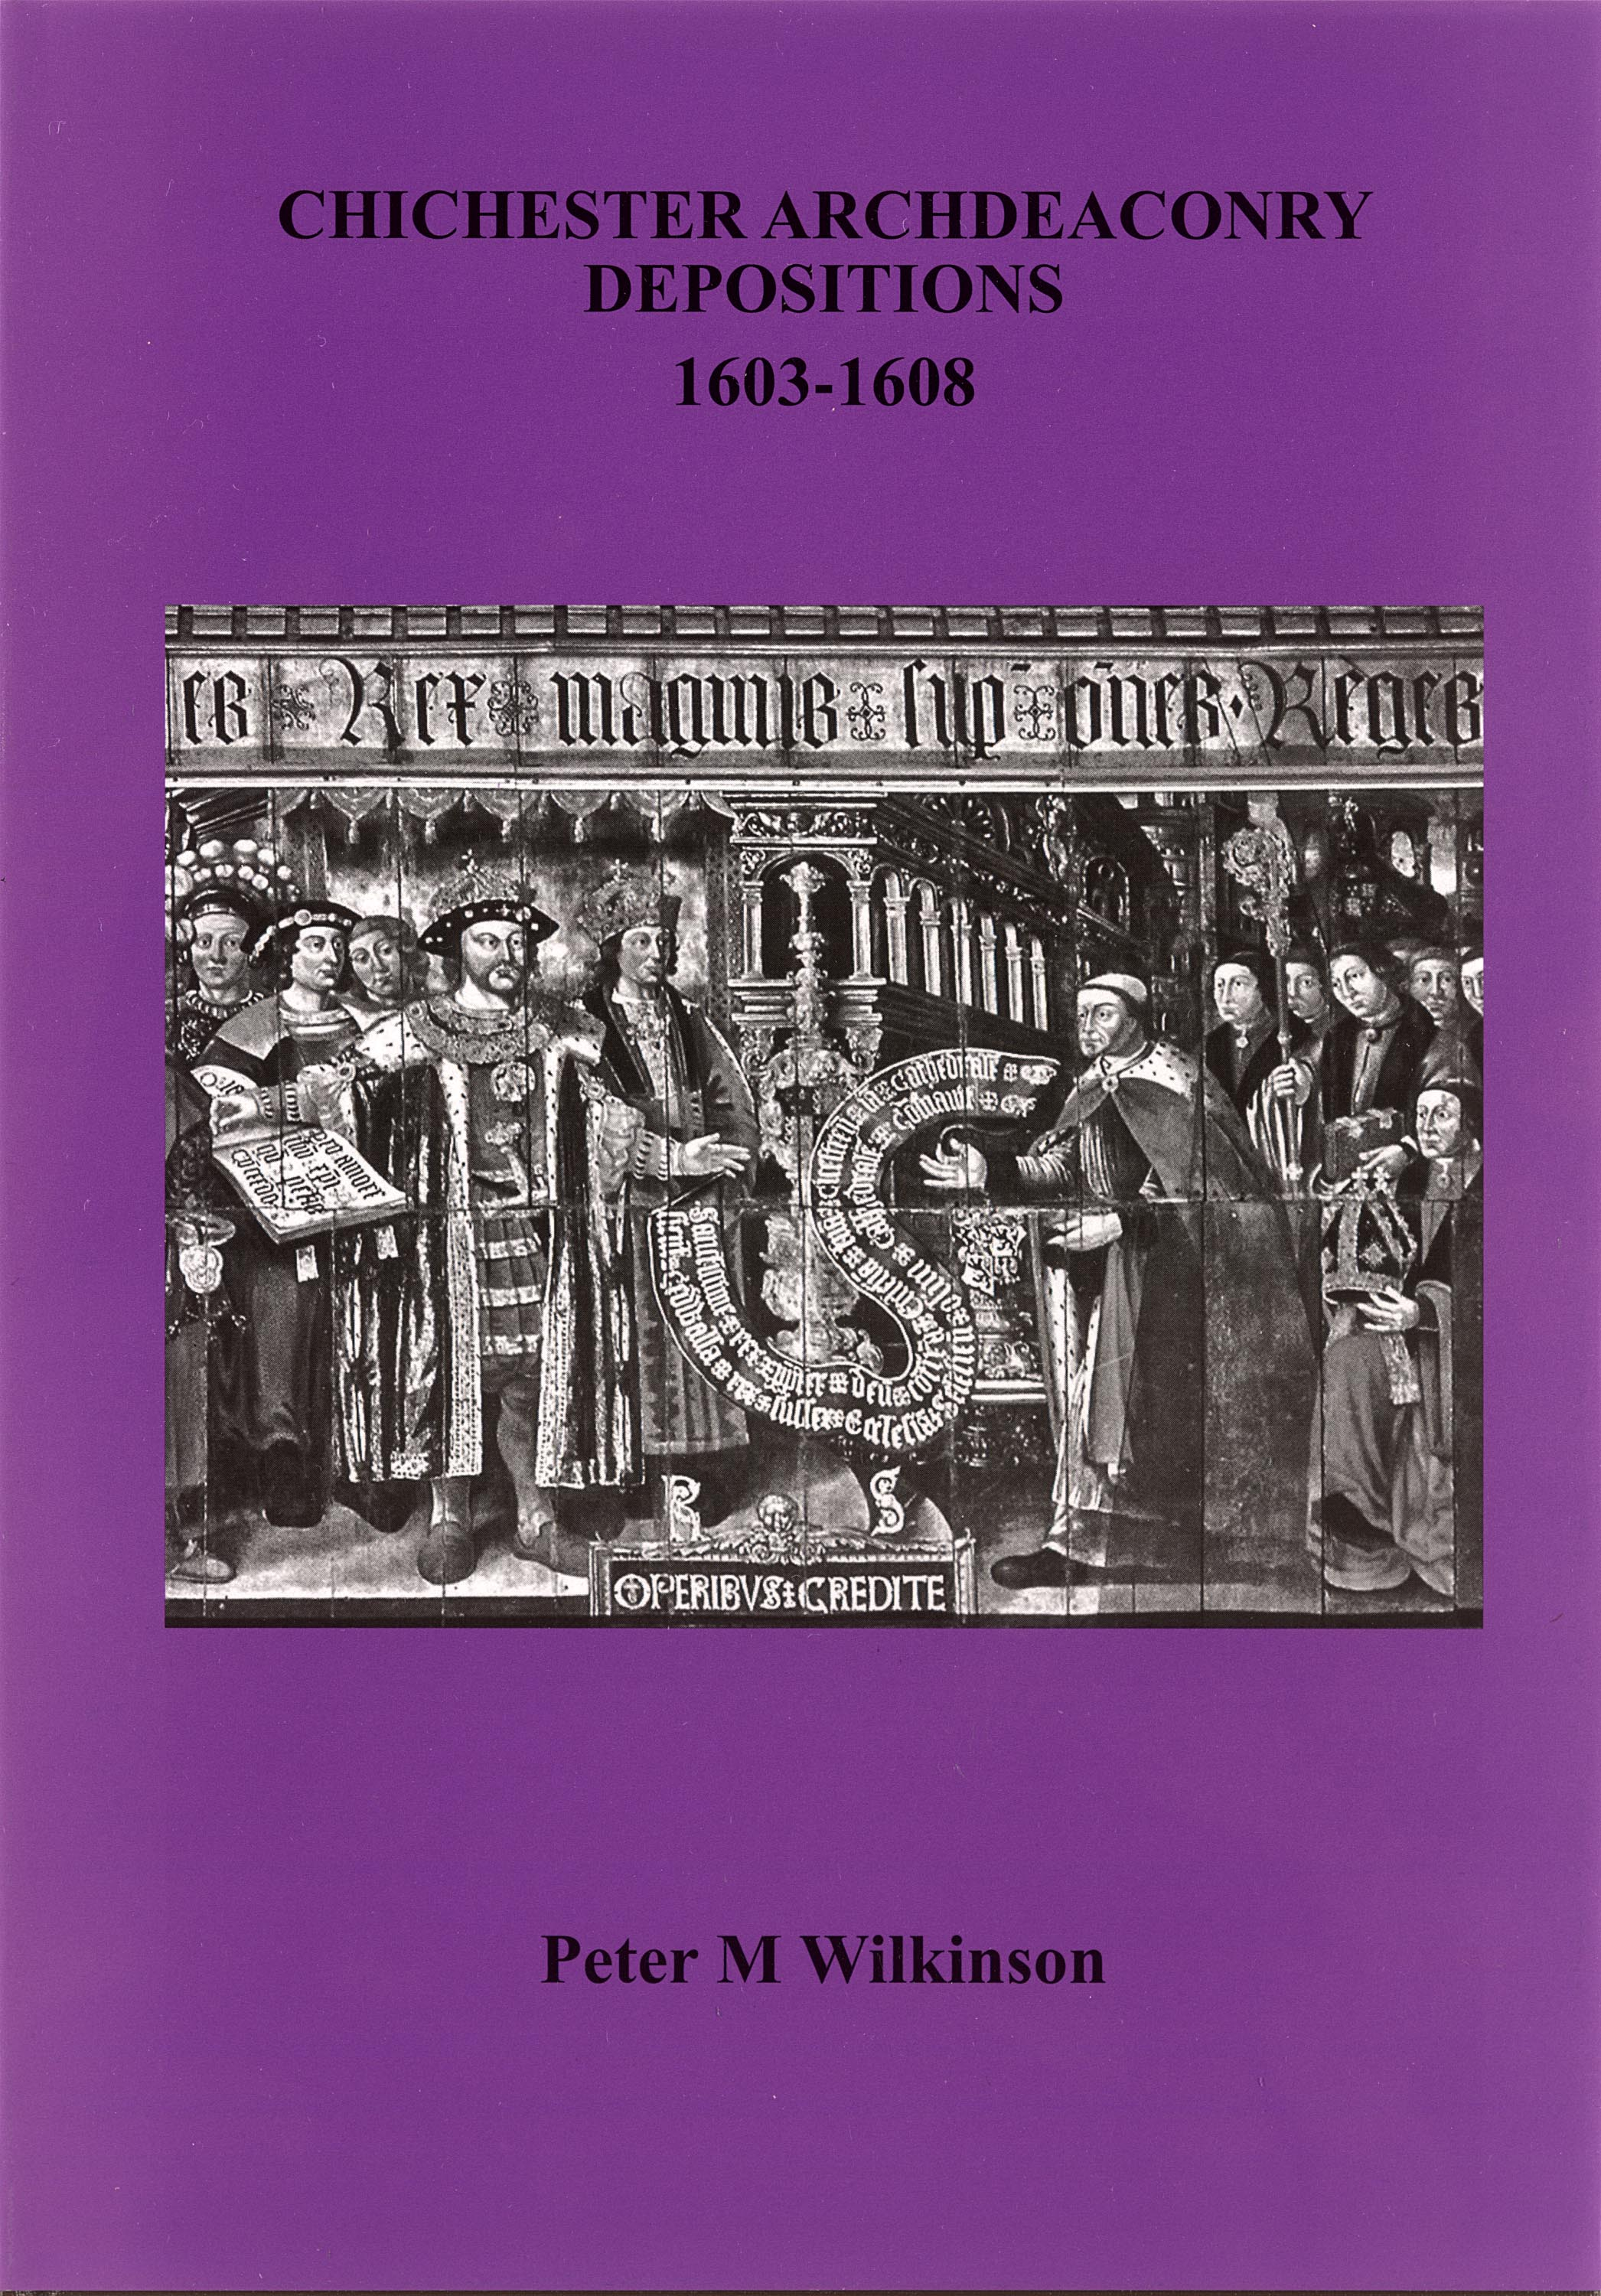 Chichester Archdeanery Depositions 1603-1608 Book Cover